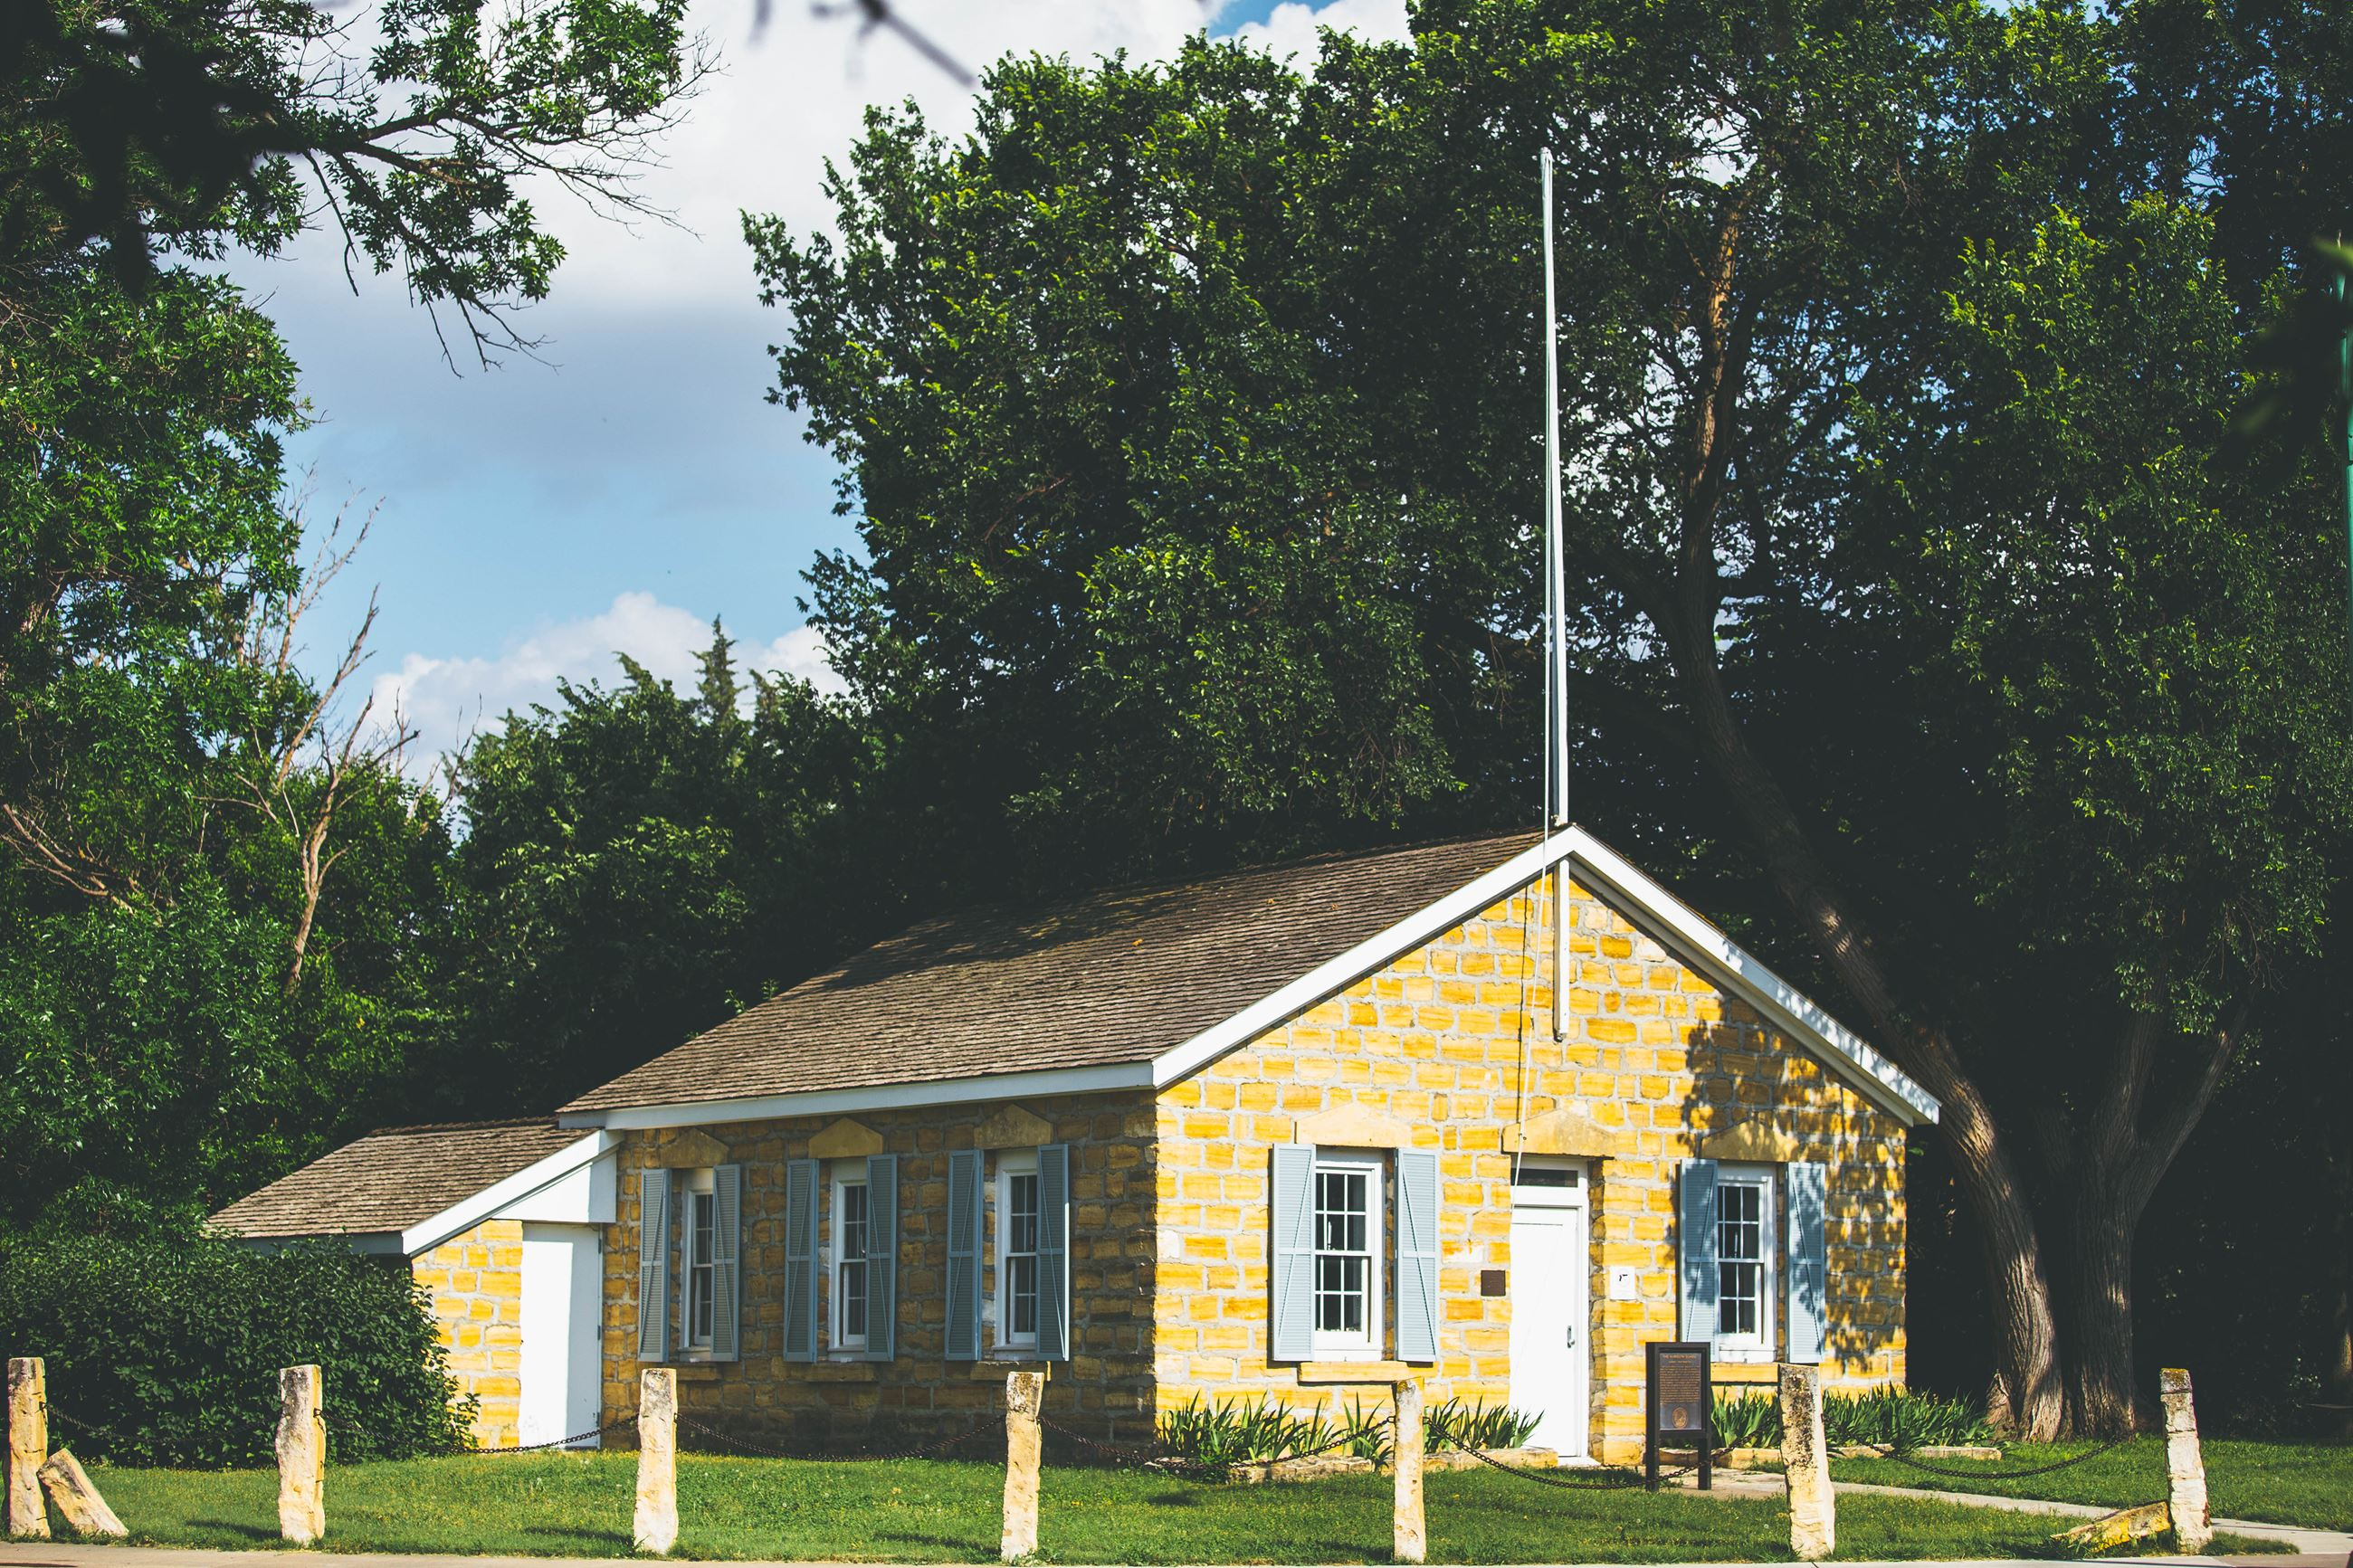 Plymouth Schoolhouse